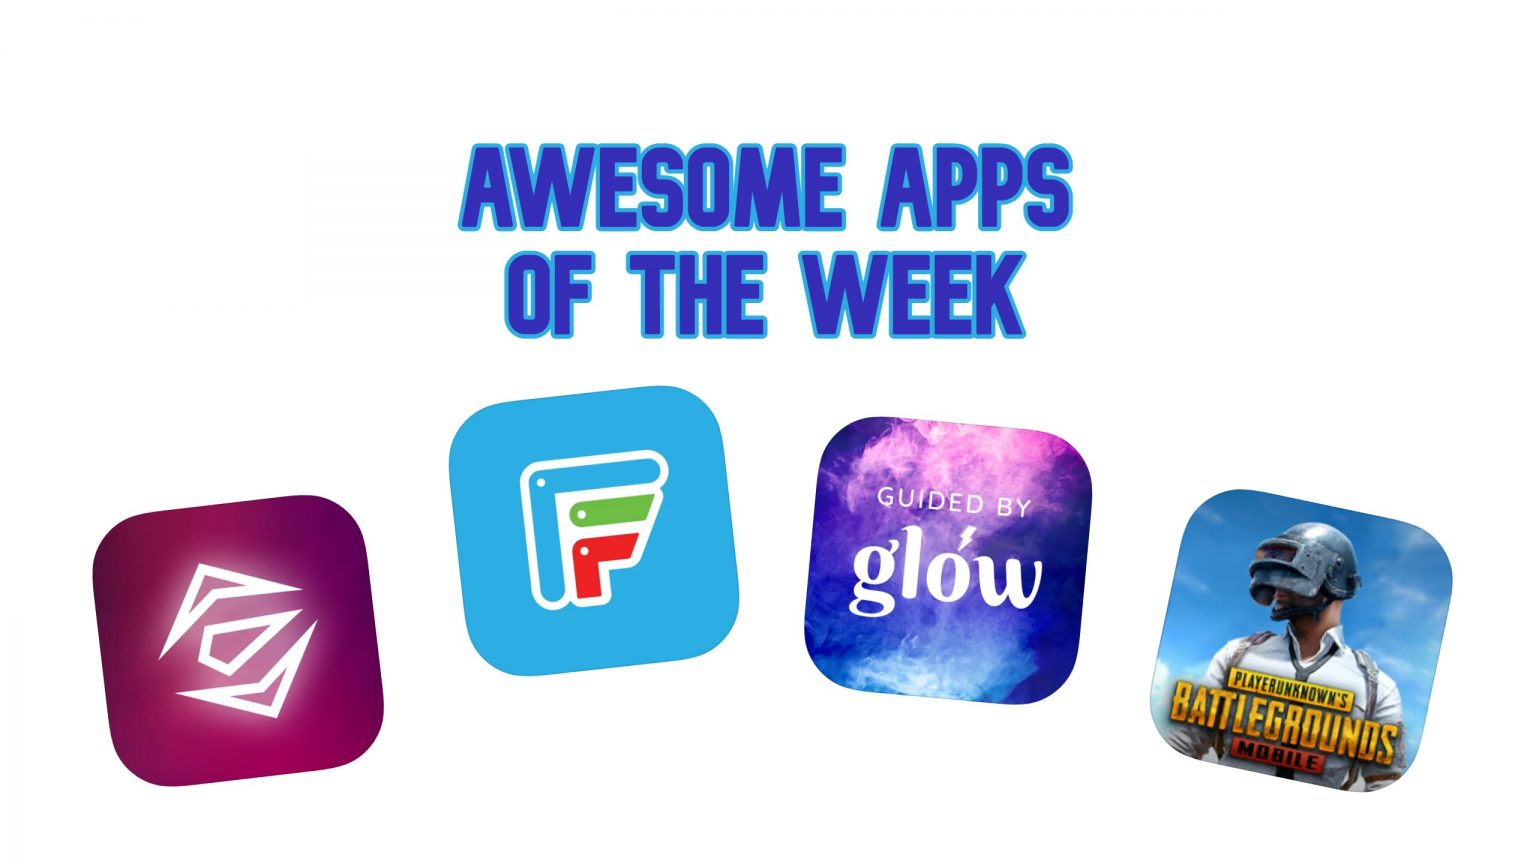 Blast off with space games and female erotica [Awesome Apps of the Week]